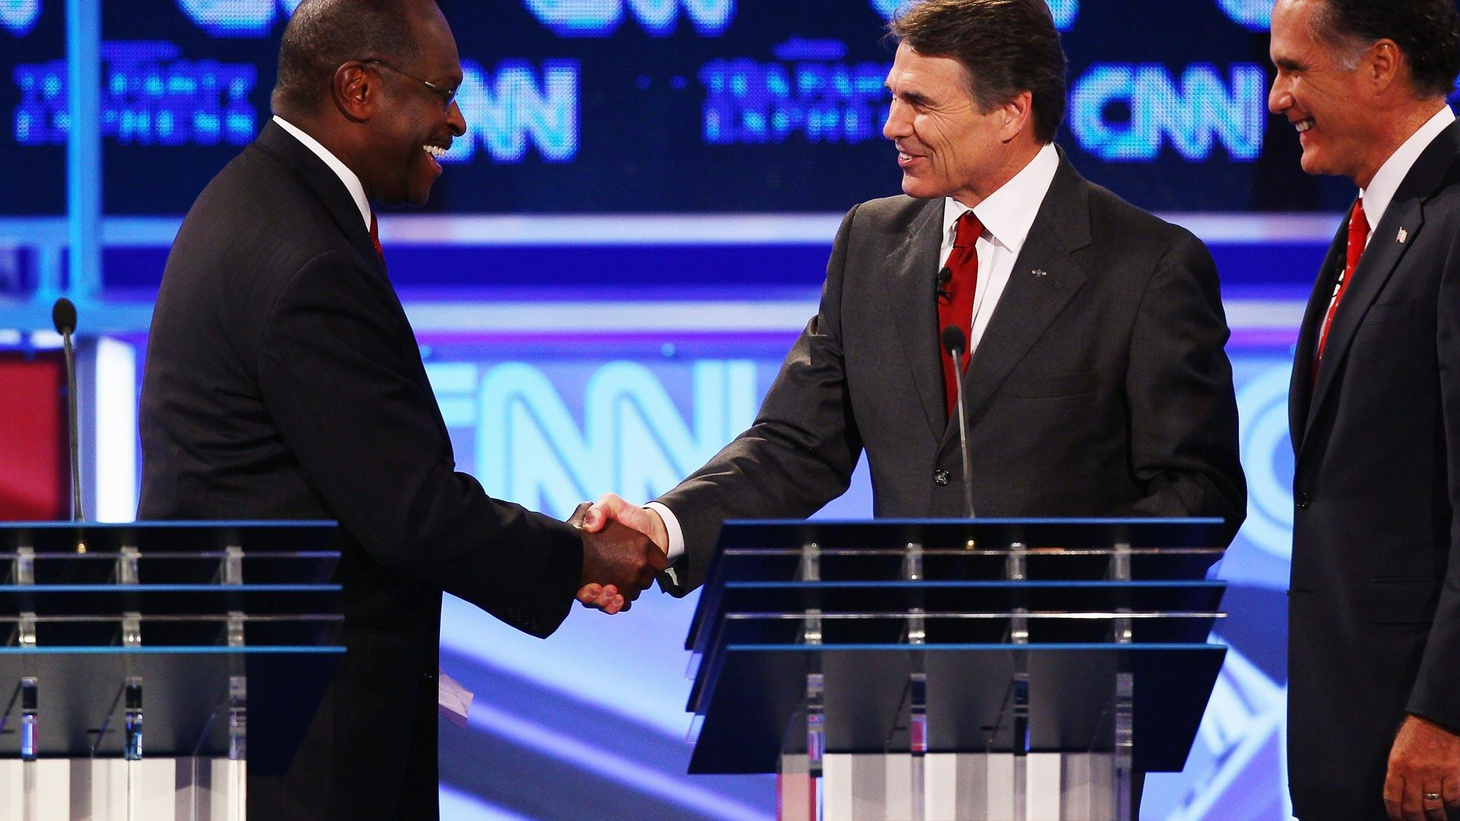 Southern evangelical Christians will have a big voice in the early GOP primaries. Will Romney's religion be an issue? Why has Cain outstripped Perry in public opinion polls?